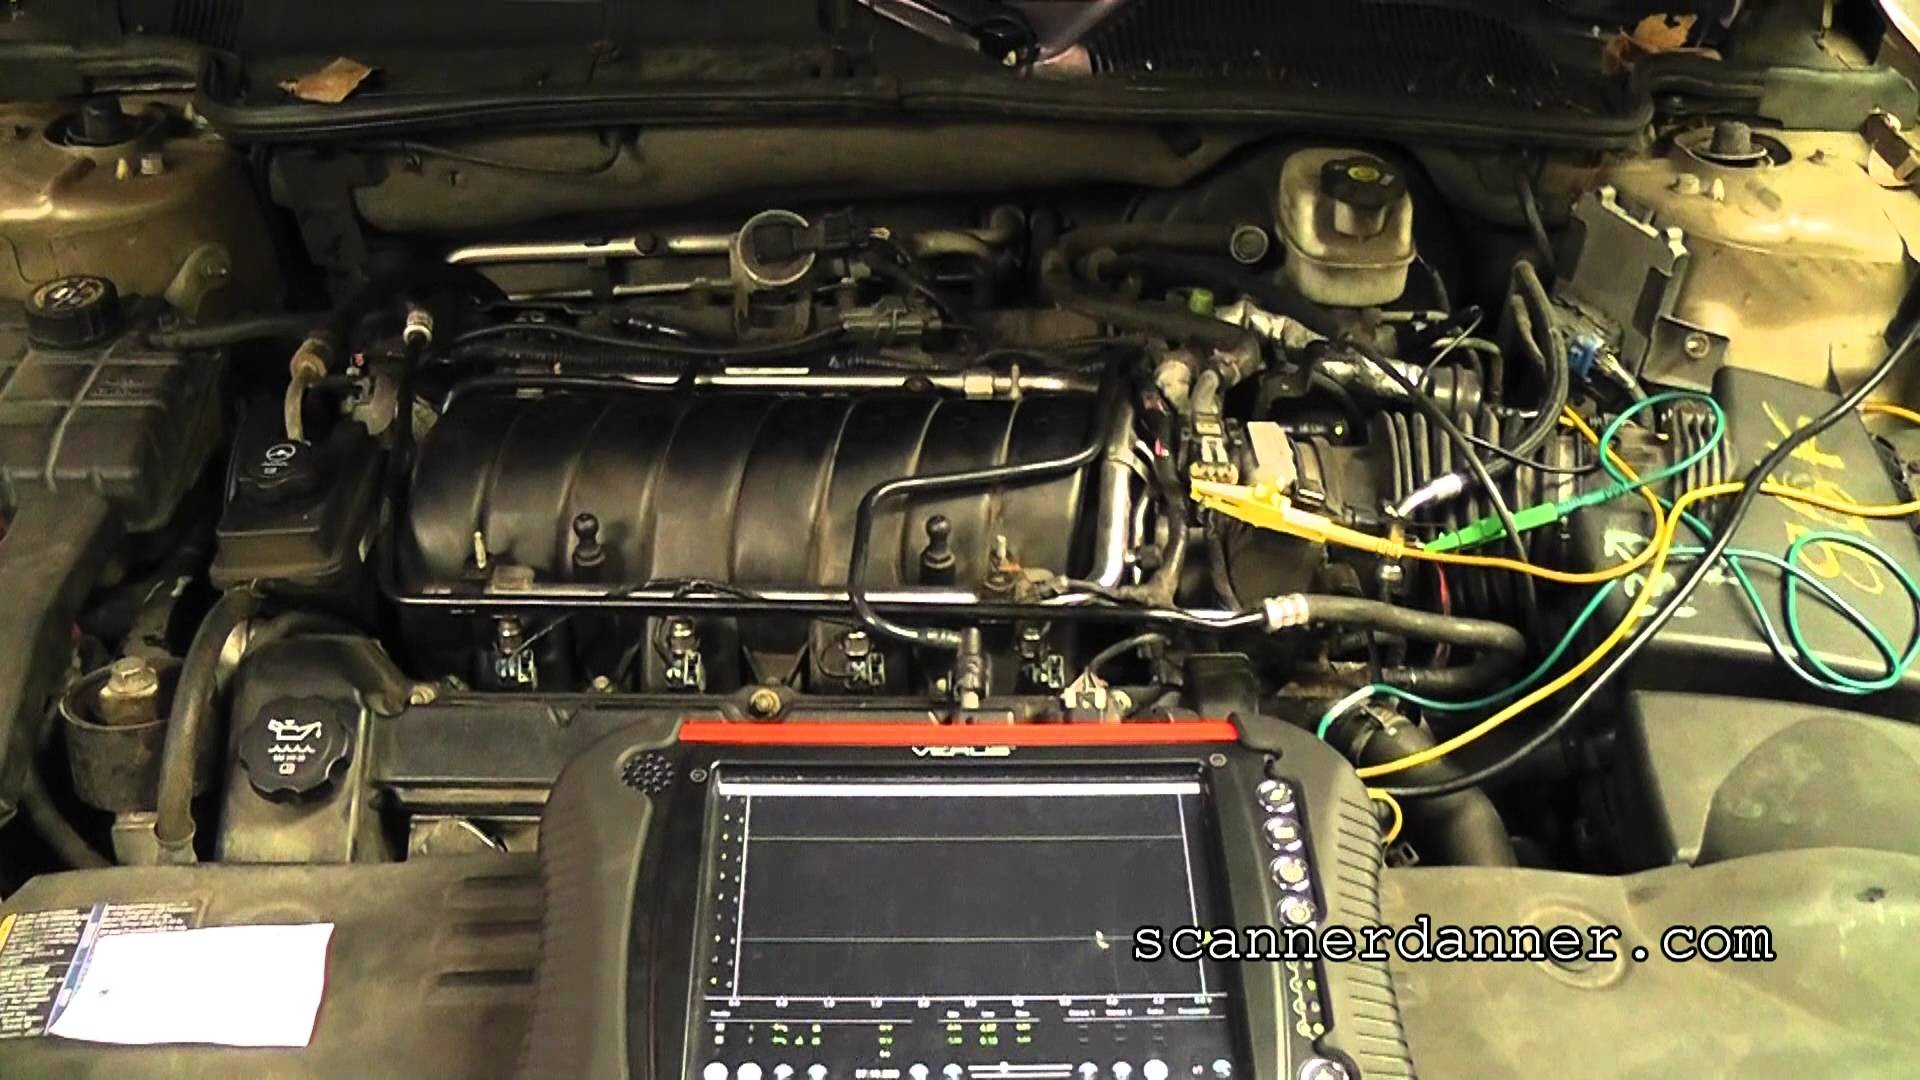 2000 Cadillac Deville Engine Diagram Audi A6 How To Check The 5v Reference Circuit For A Short